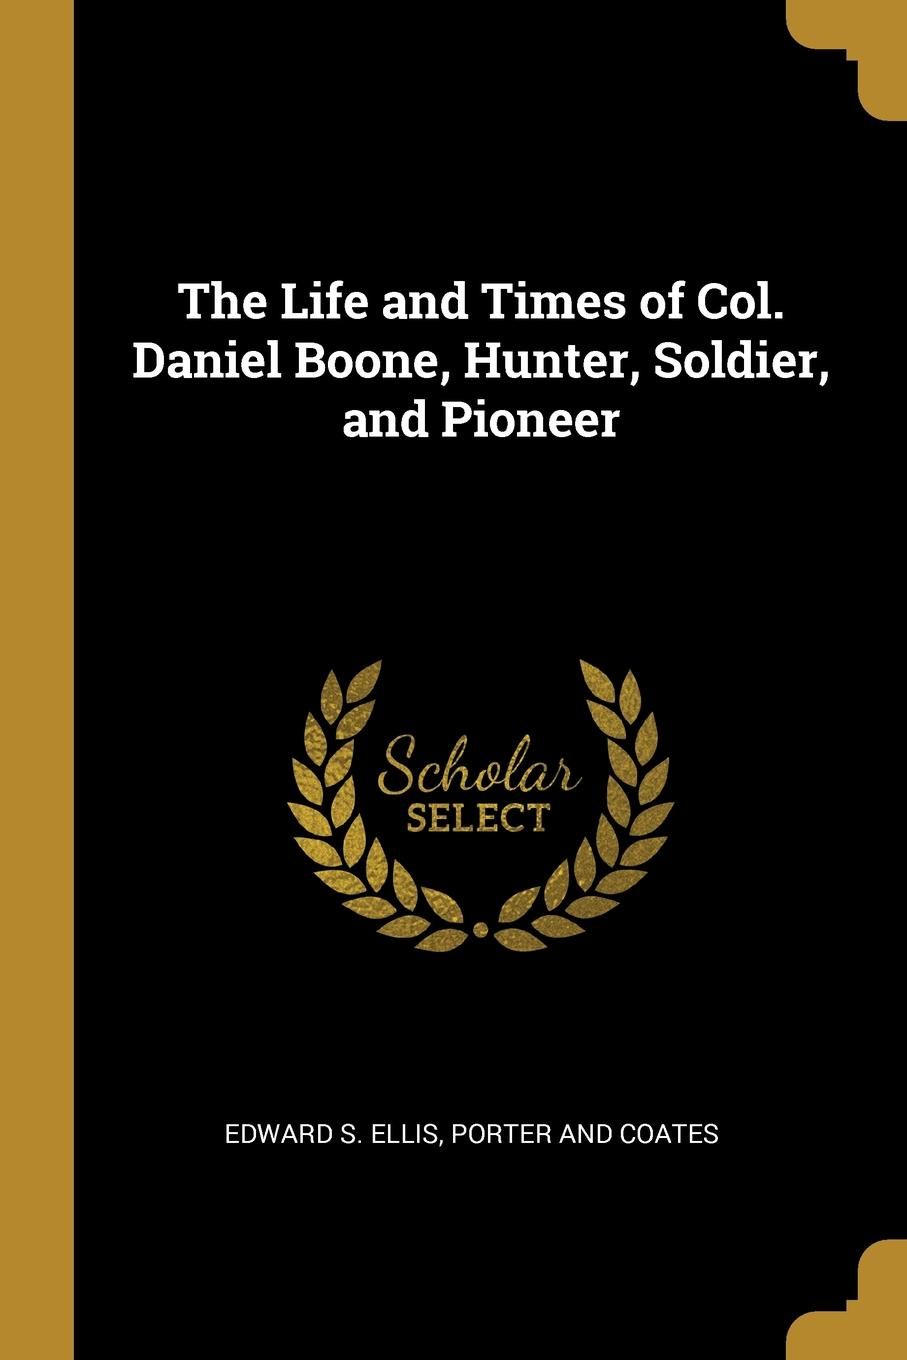 Edward S. Ellis The Life and Times of Col. Daniel Boone, Hunter, Soldier, and Pioneer